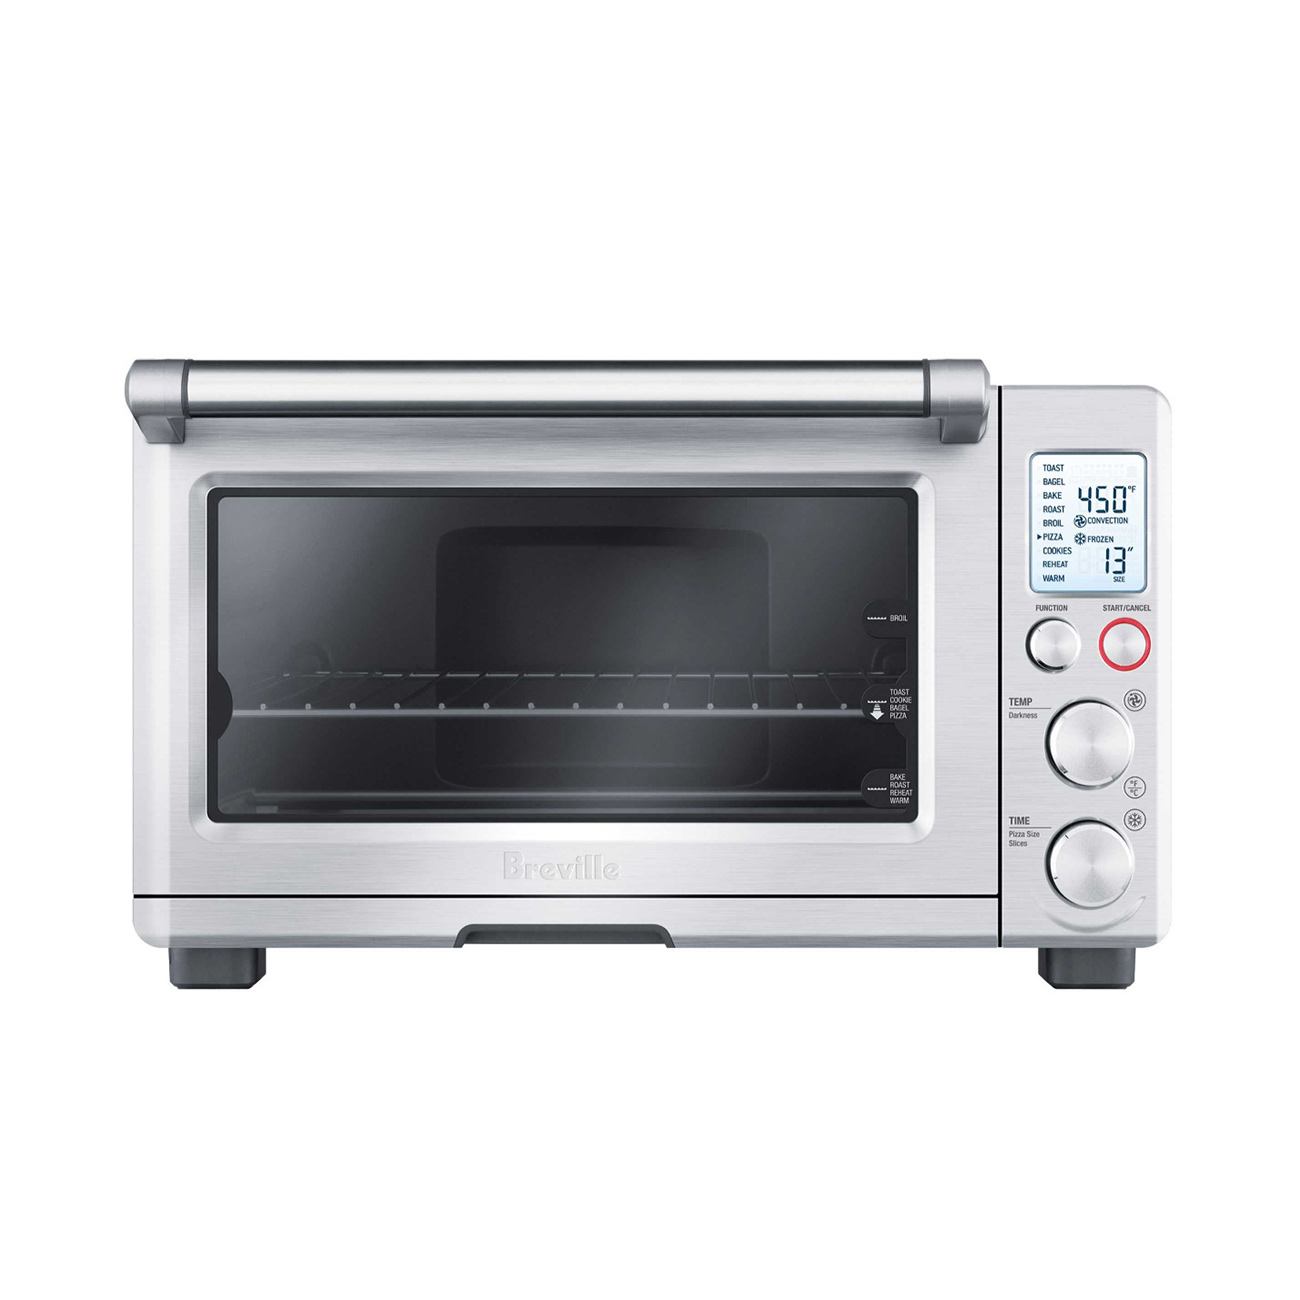 The Smart Oven Toaster Breville